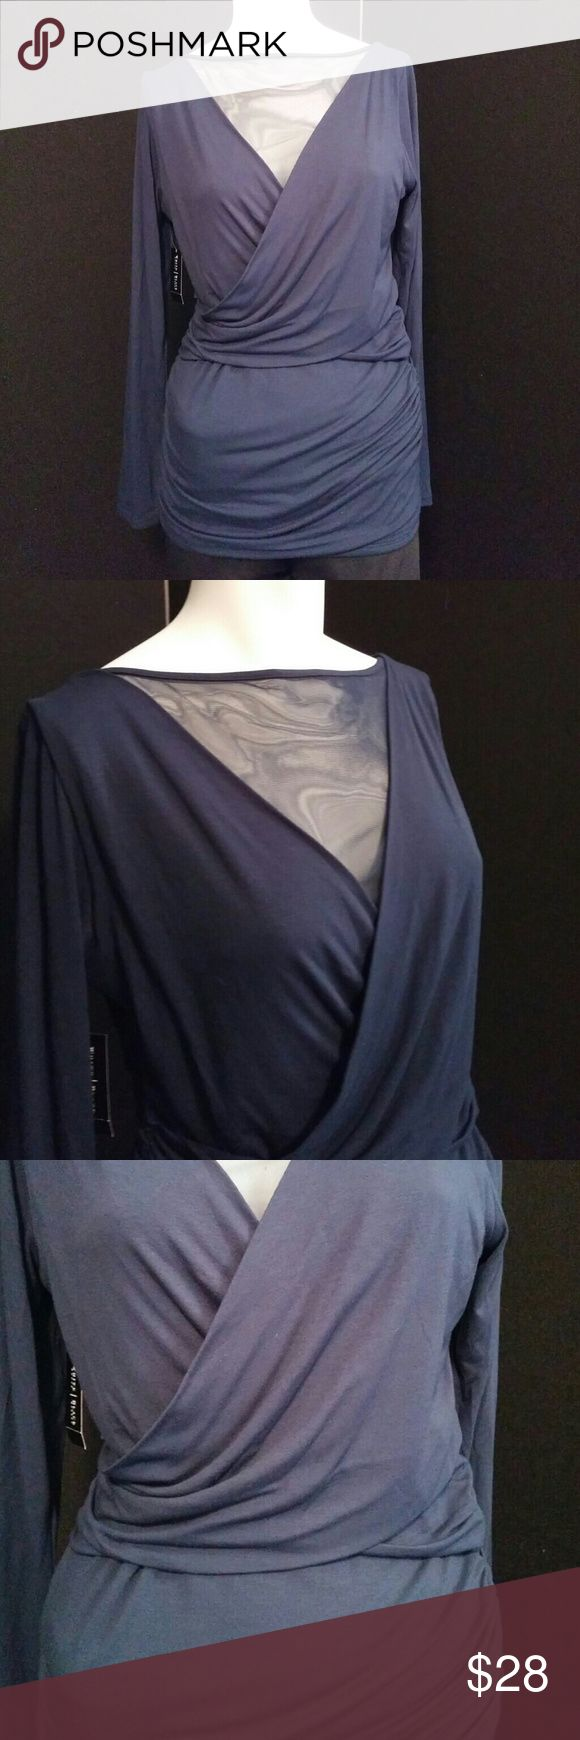 NWT White House Black Market Navy top This gorgeous White House Black Market top has a shear neck area and back area. The fabric is so comfortable stretchy and so flattering. Navy blue and color, size medium. Longer fit. New with tags. White House Black Market Tops